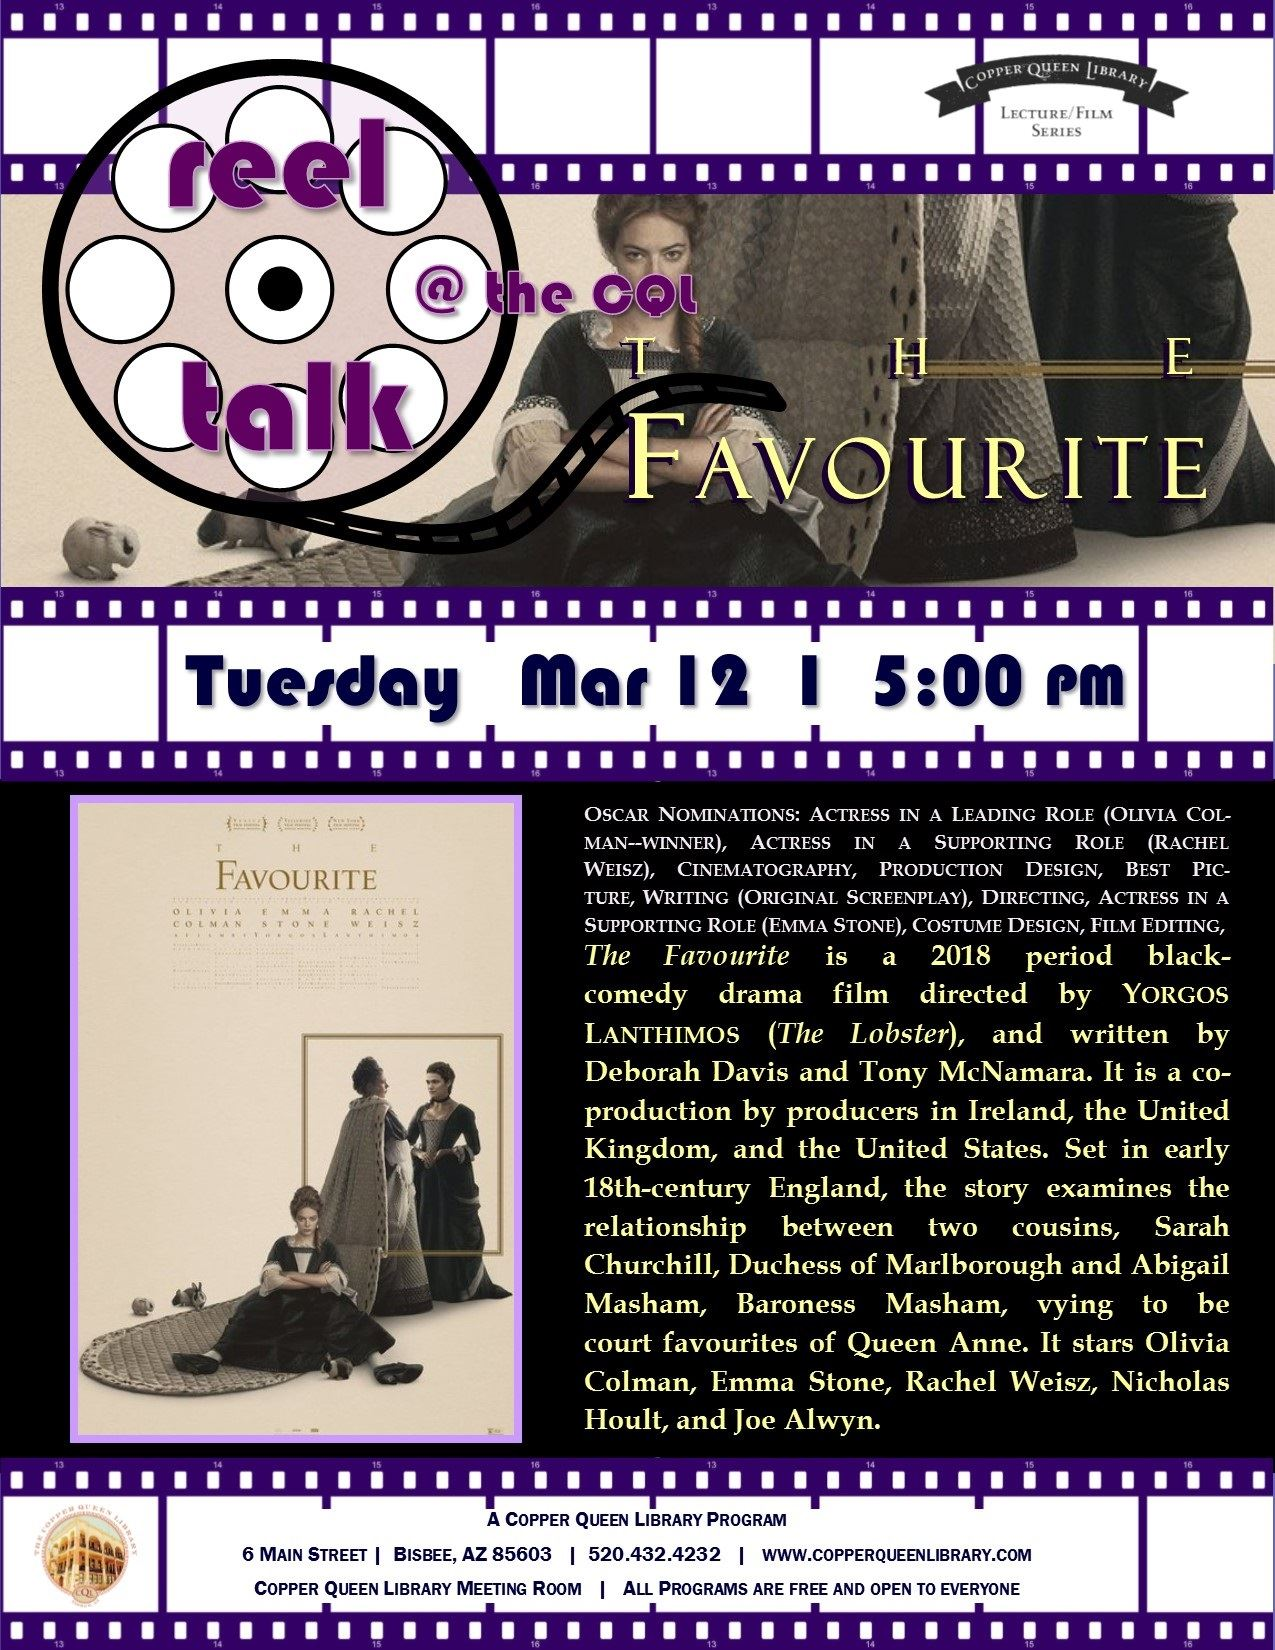 REEL TALK THE FAVOURITE